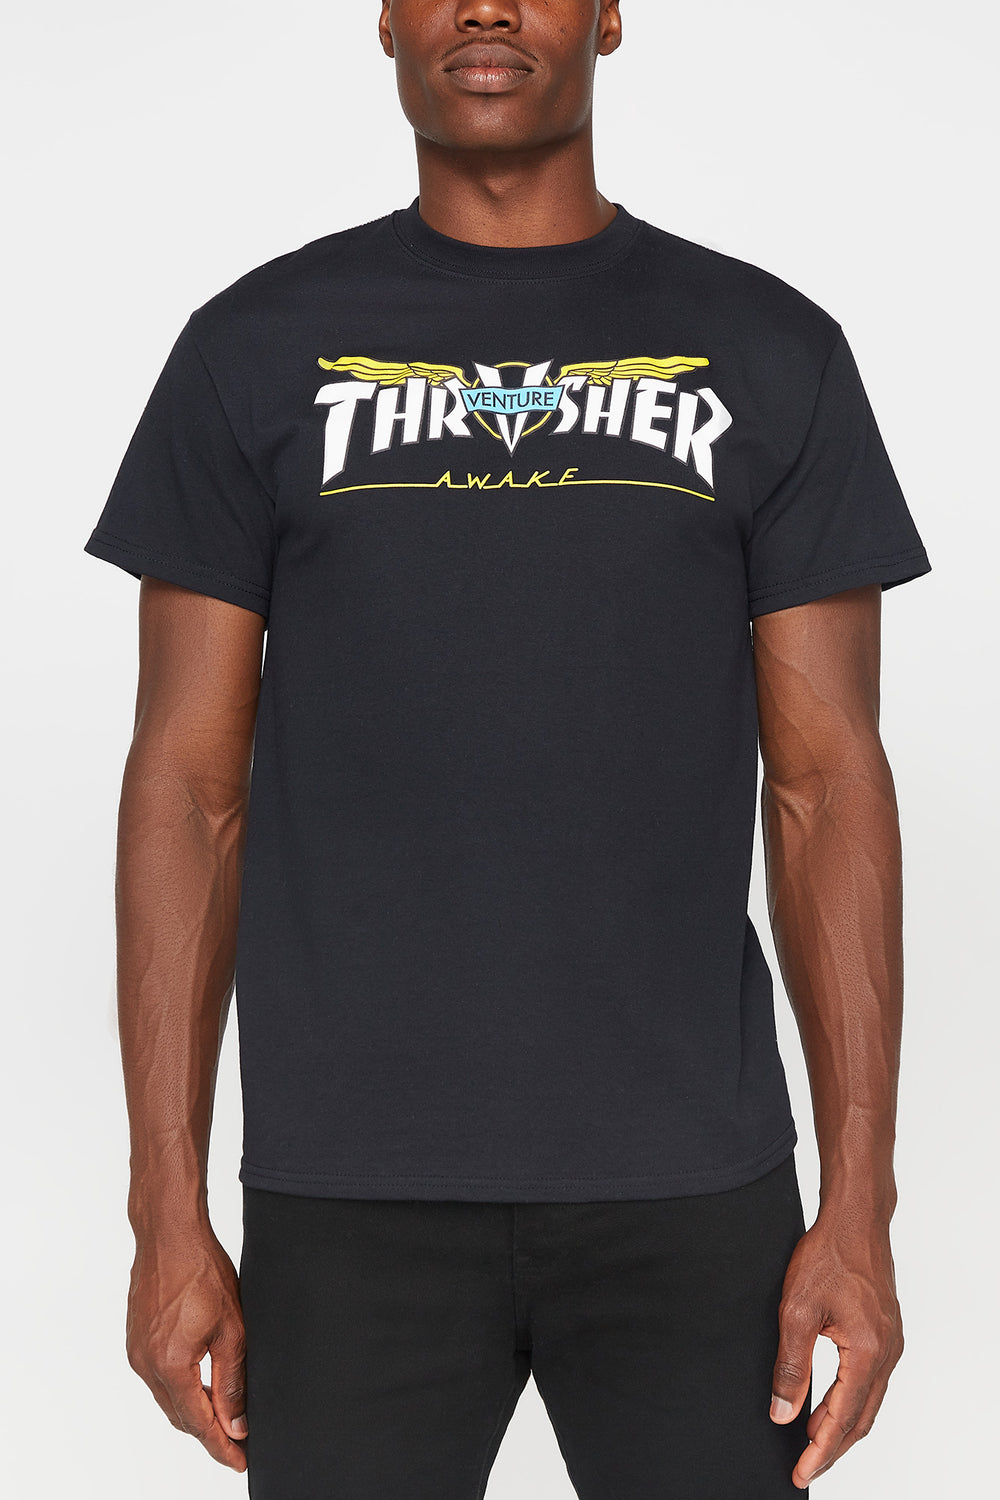 Thrasher x Venture Mens T-Shirt Black